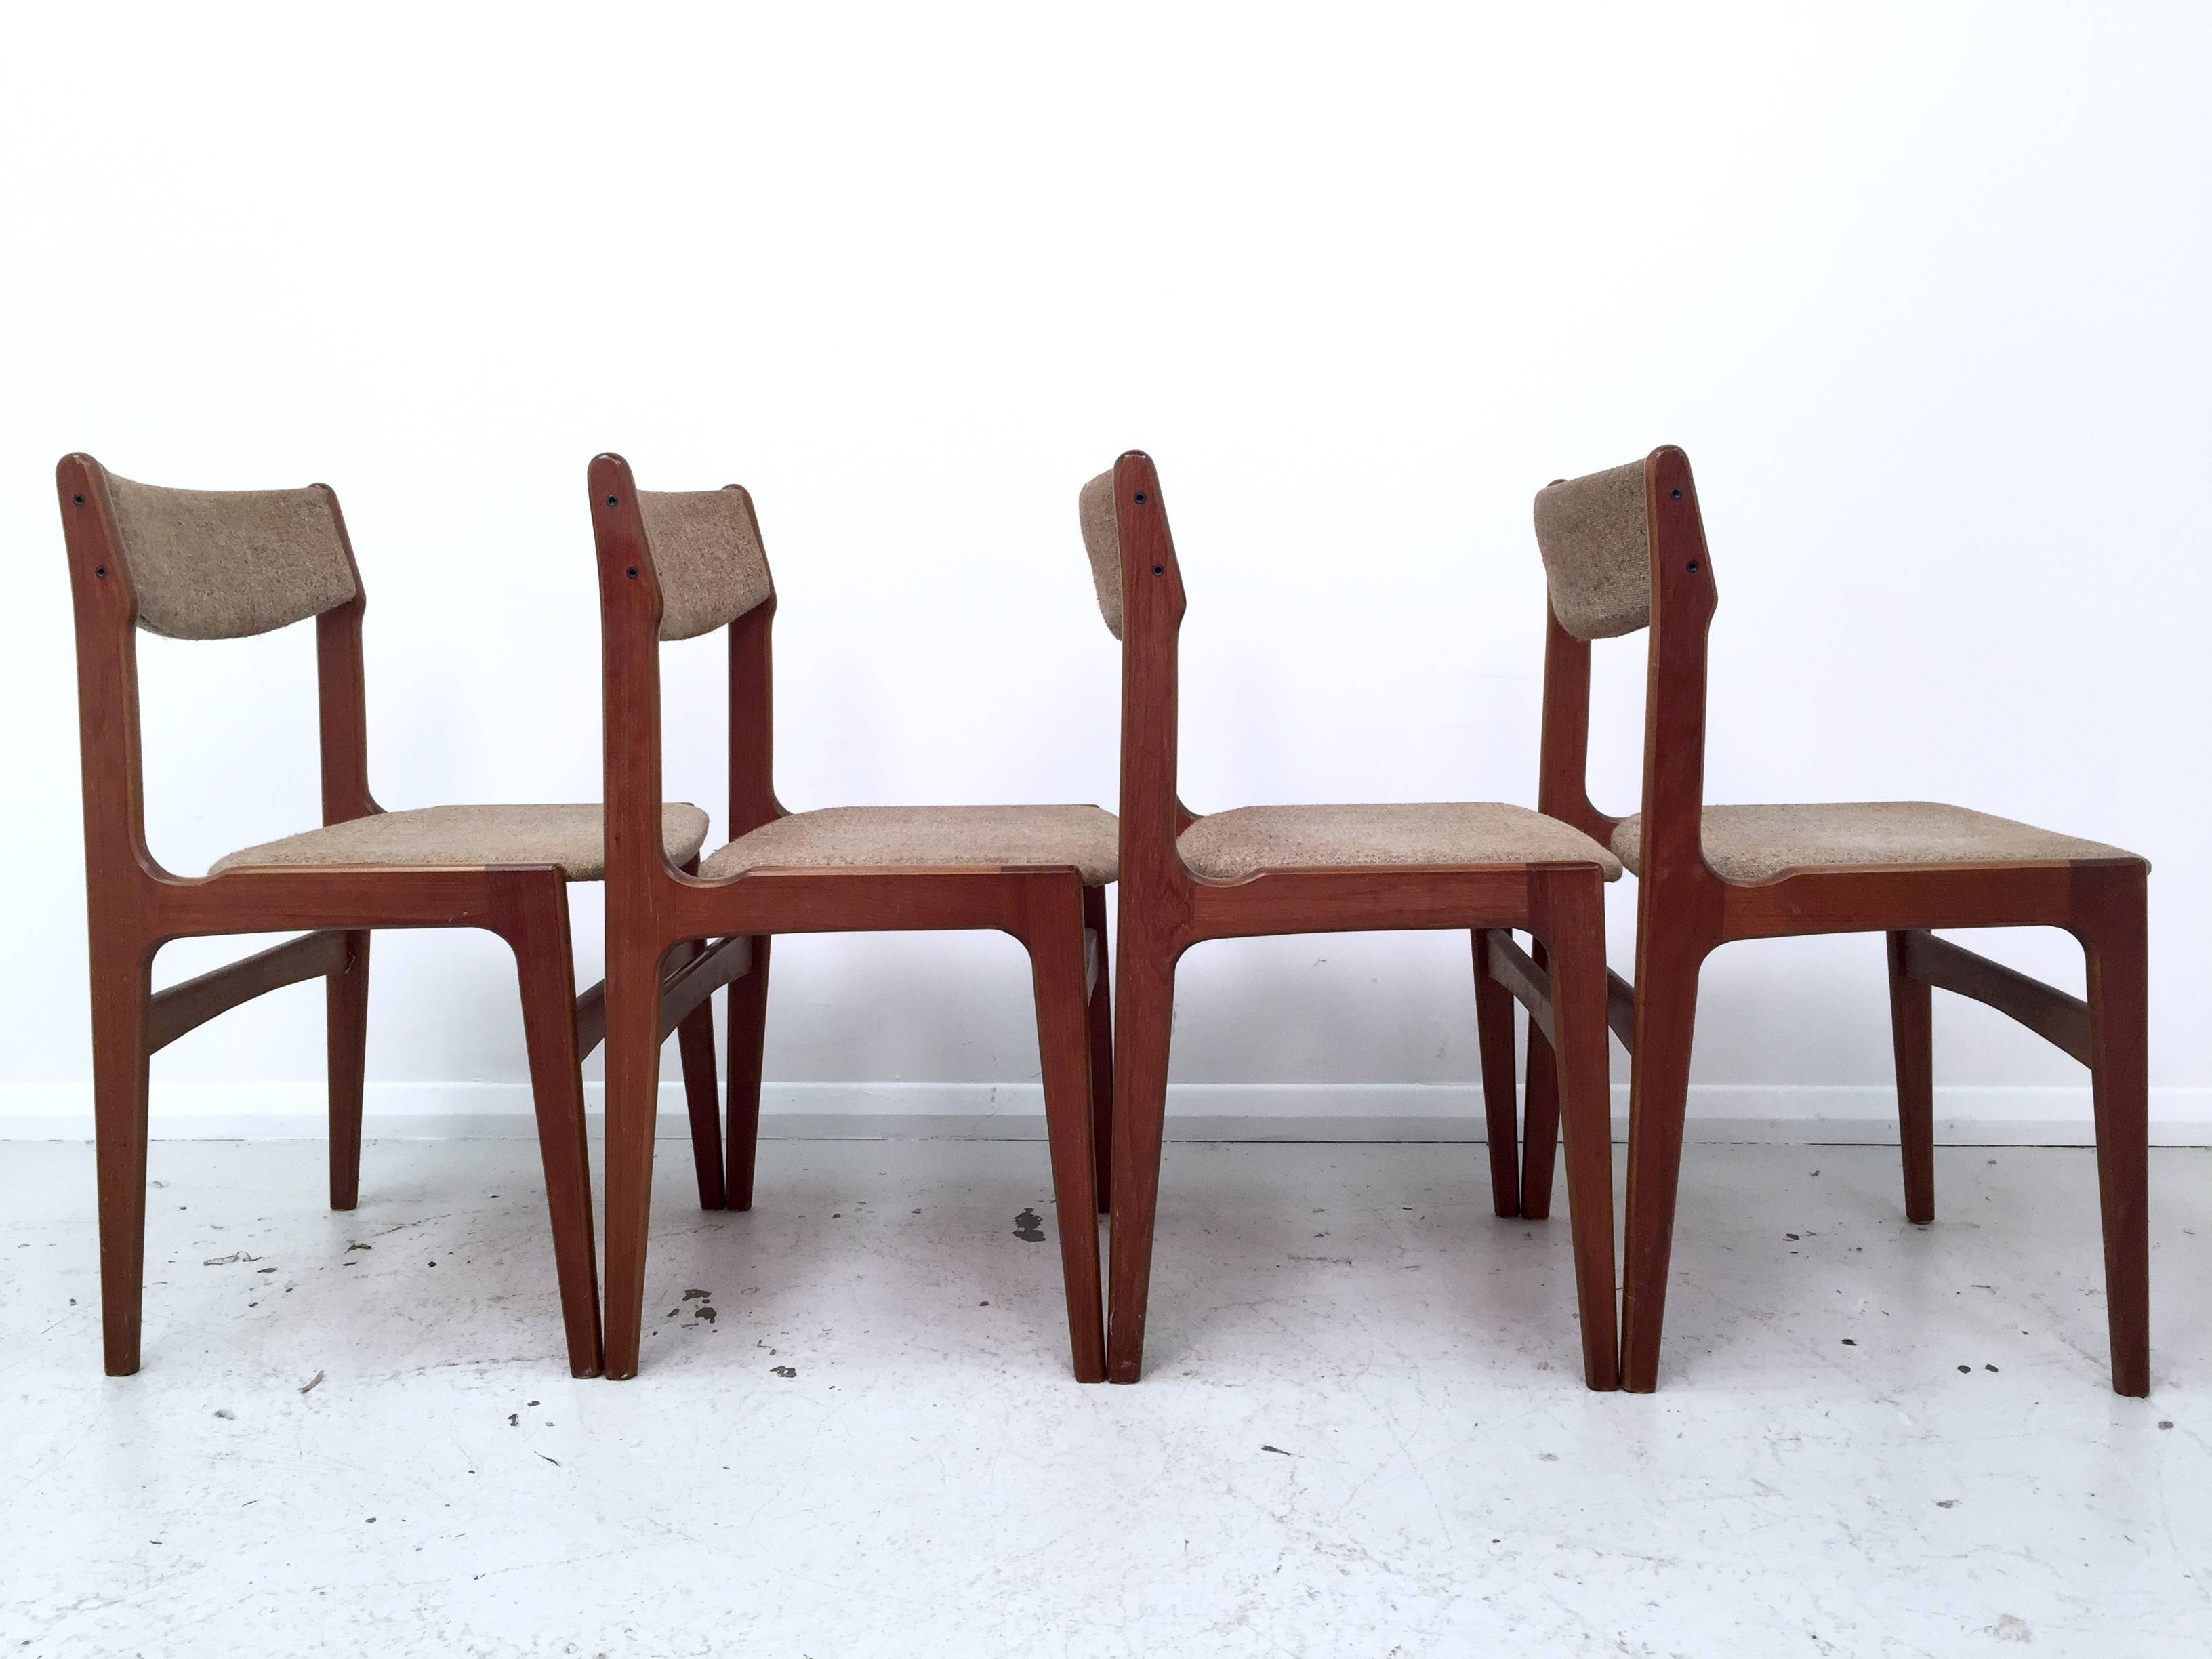 teak dining chairs by erik buch 1960s set of 4 0